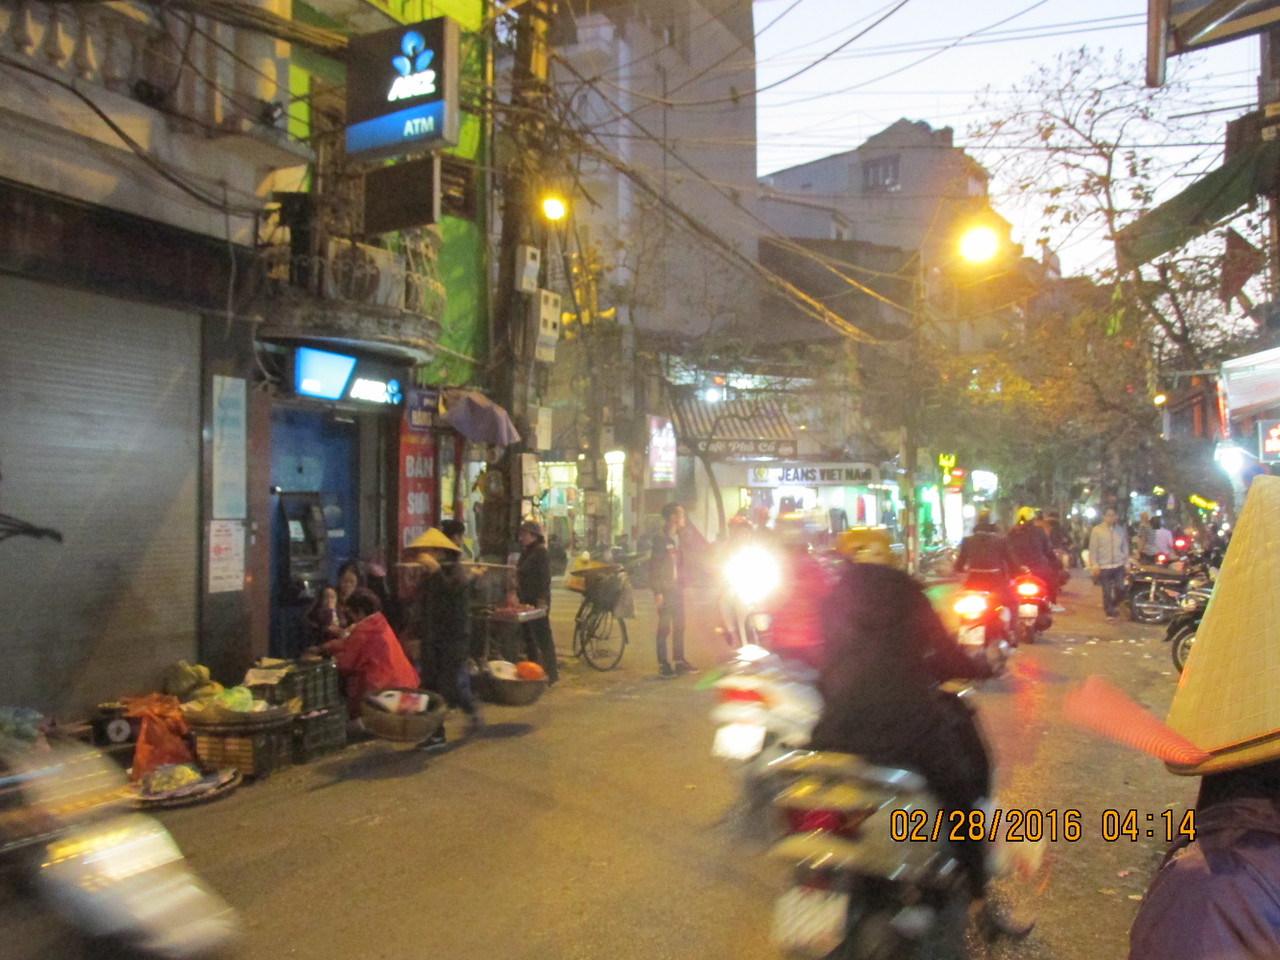 0057 - Streets of the Old Quarter - Hanoi Vietnam - Date Correct but Time on Pic is Wrong